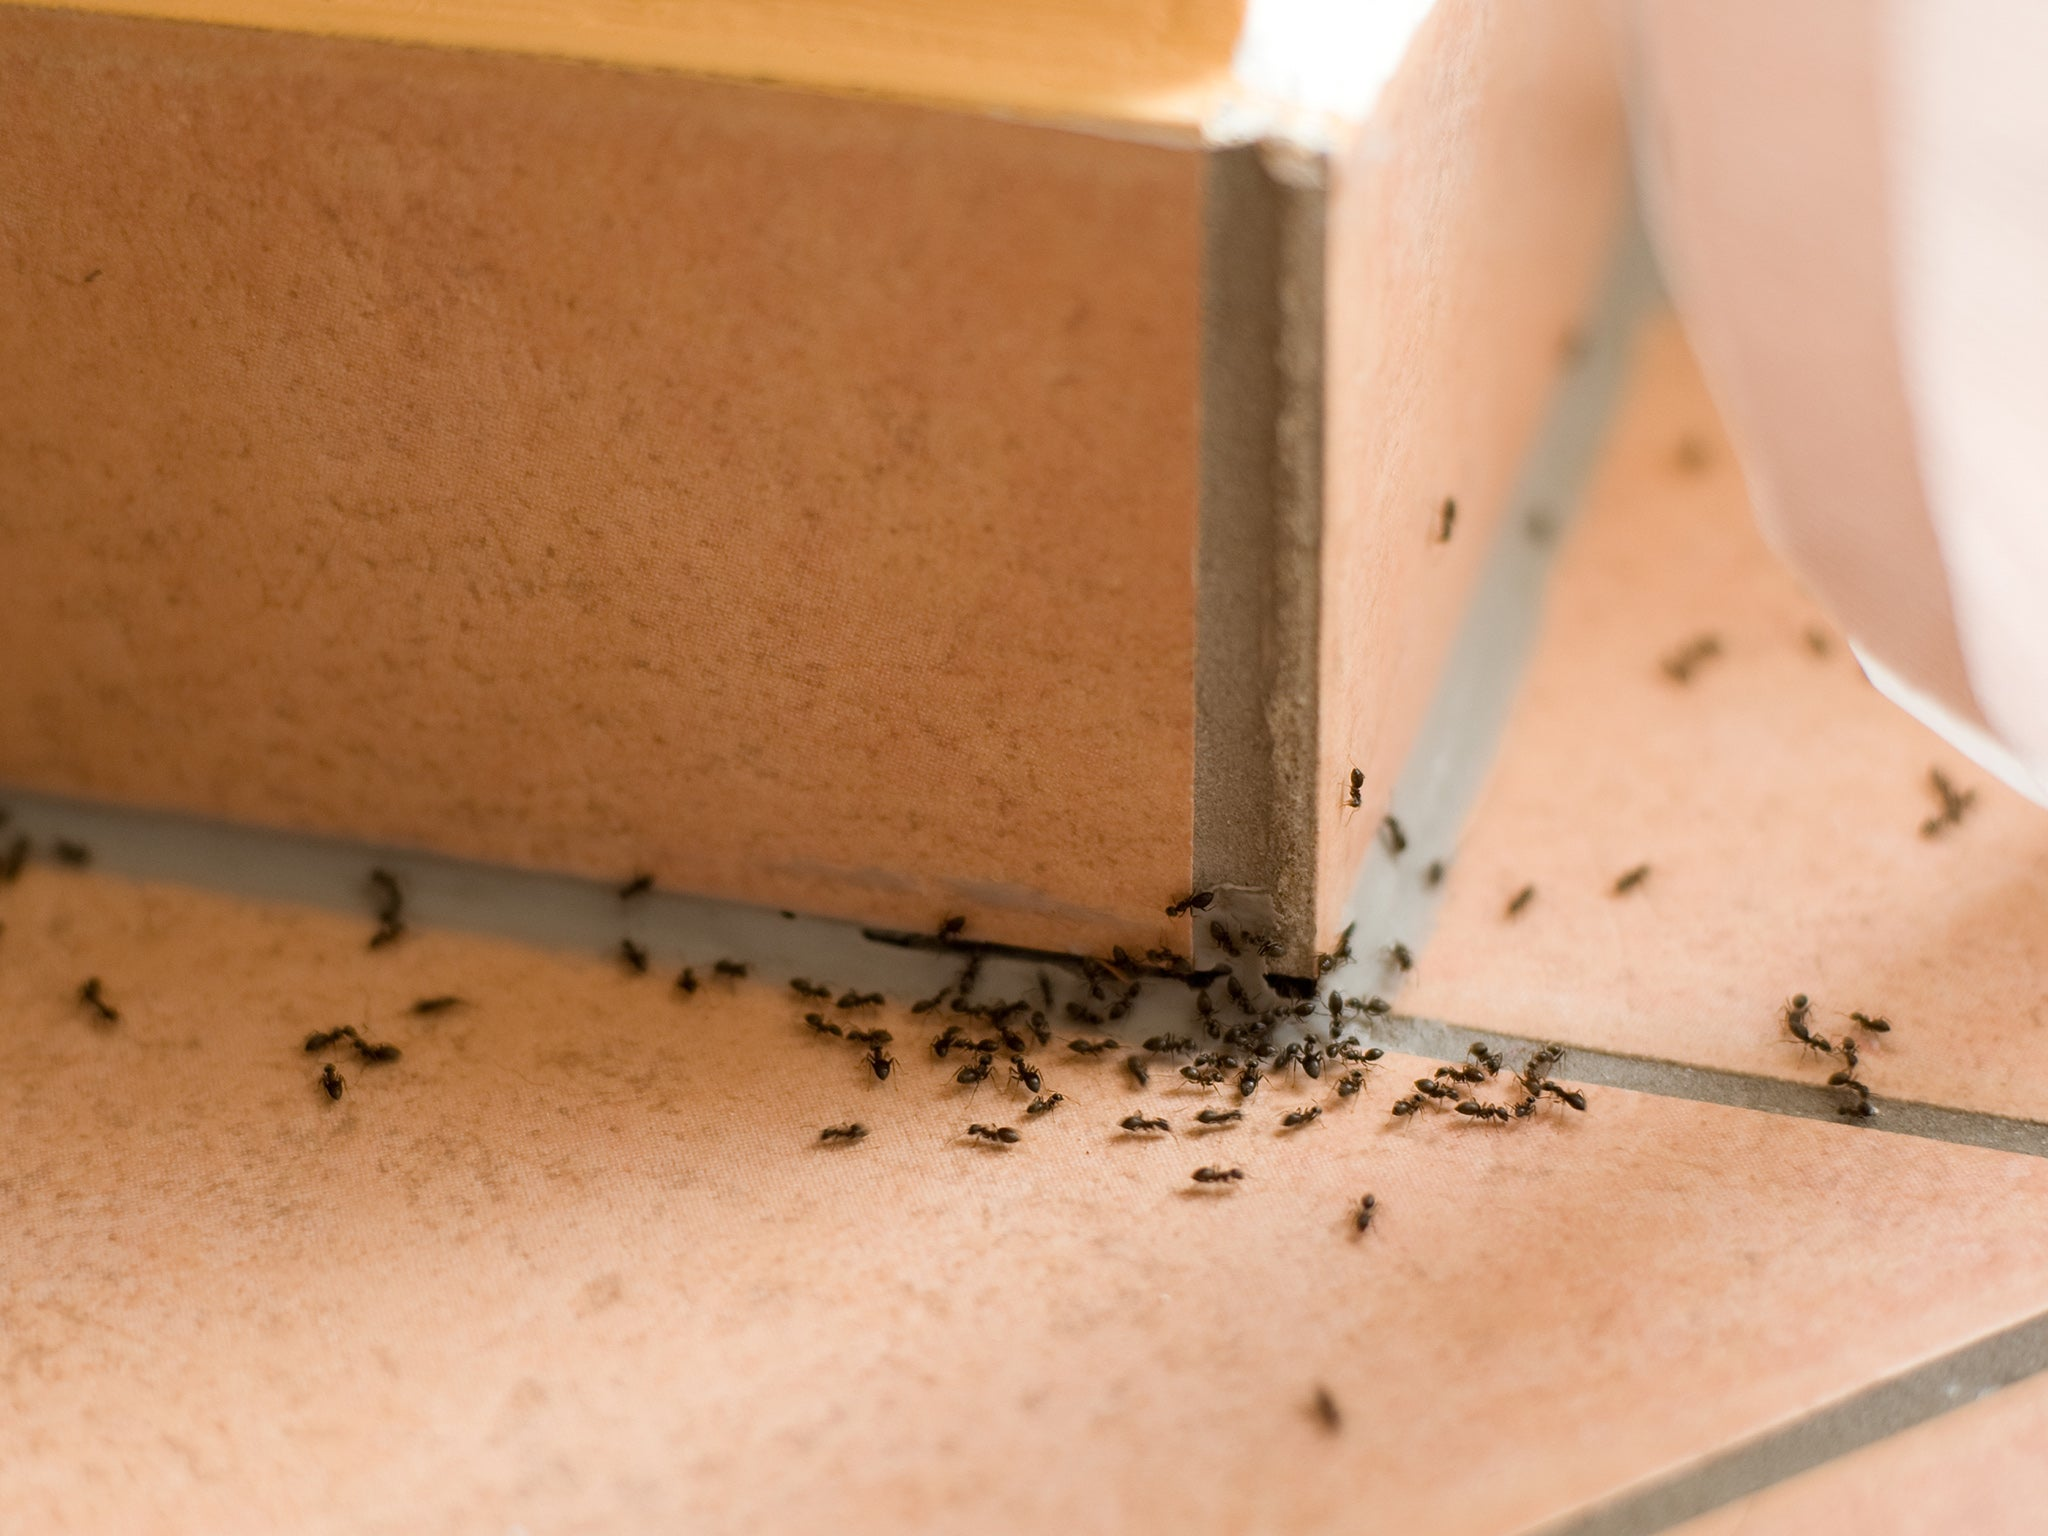 The secret to getting rid of ants permanently isn't harsh chemicals – it's bait and traps